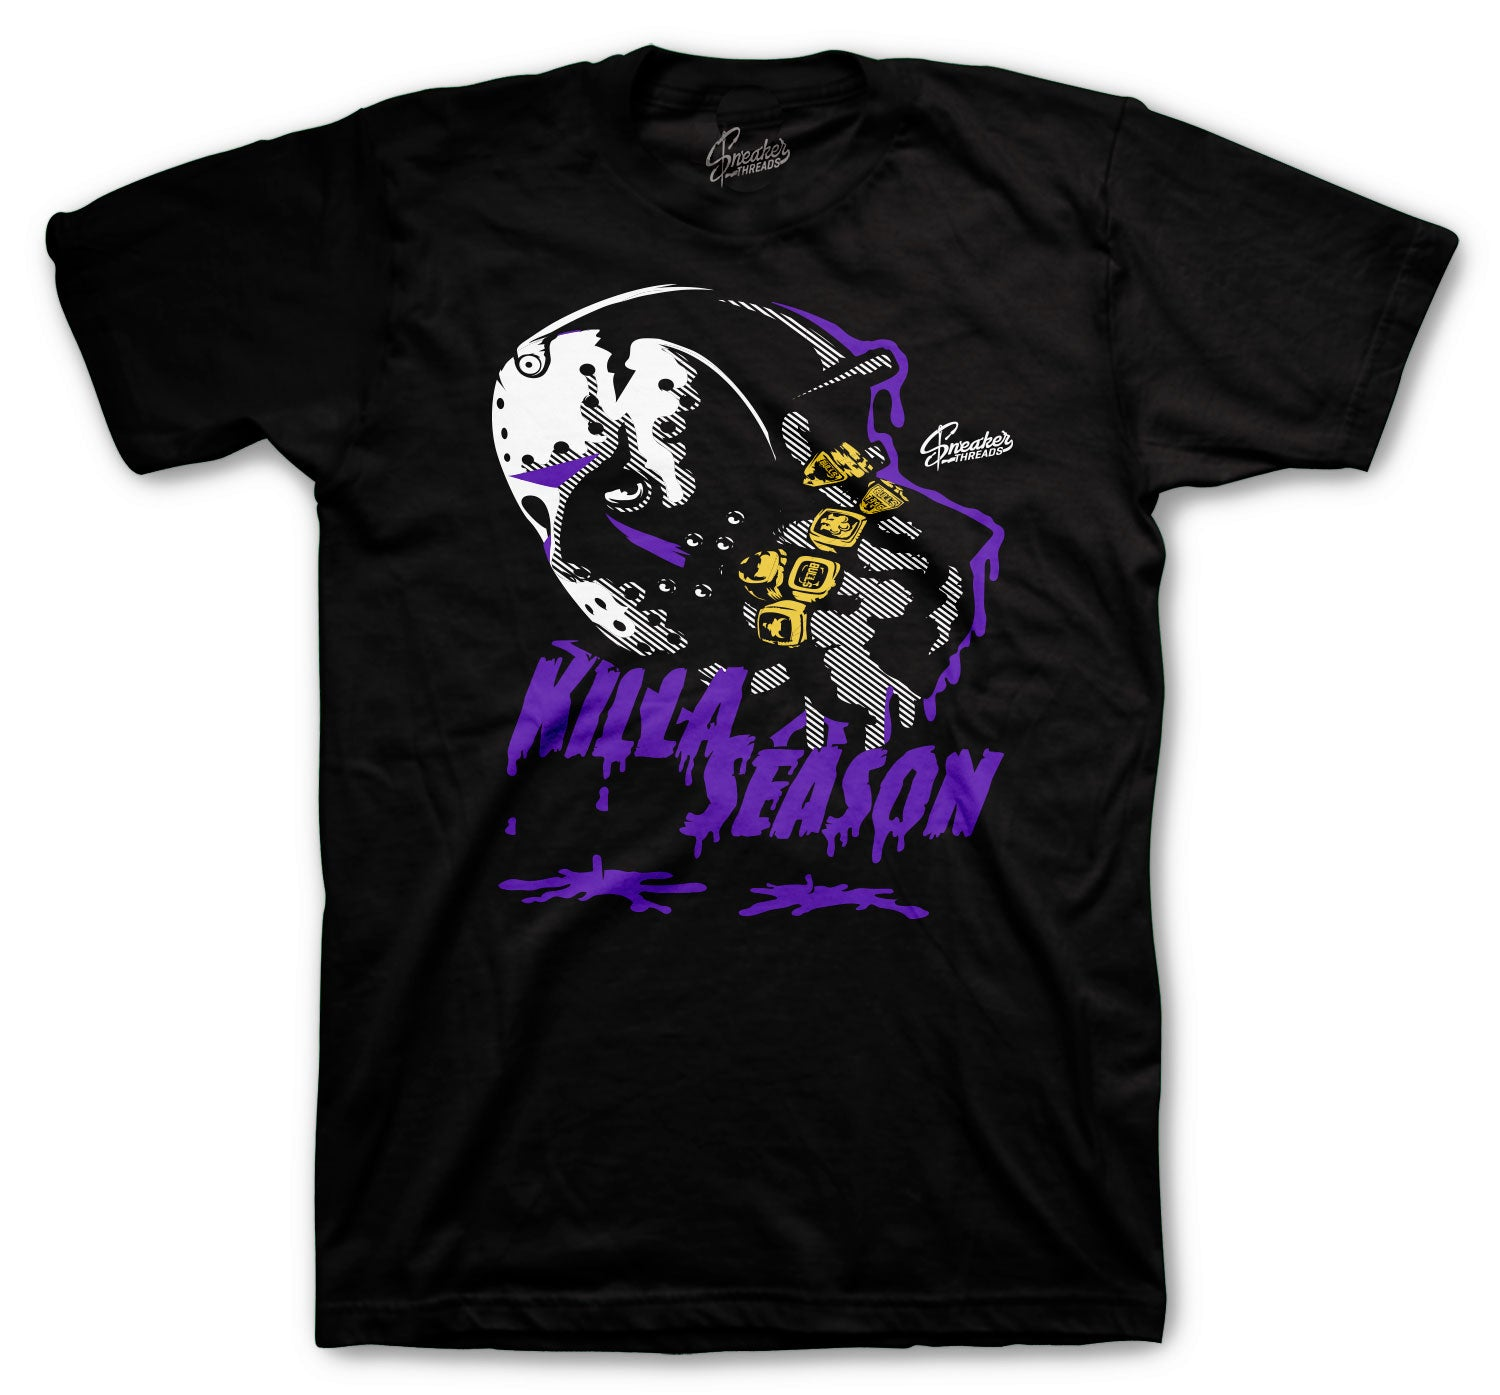 Jordan 12 Dark Concord Killa Season Shirt